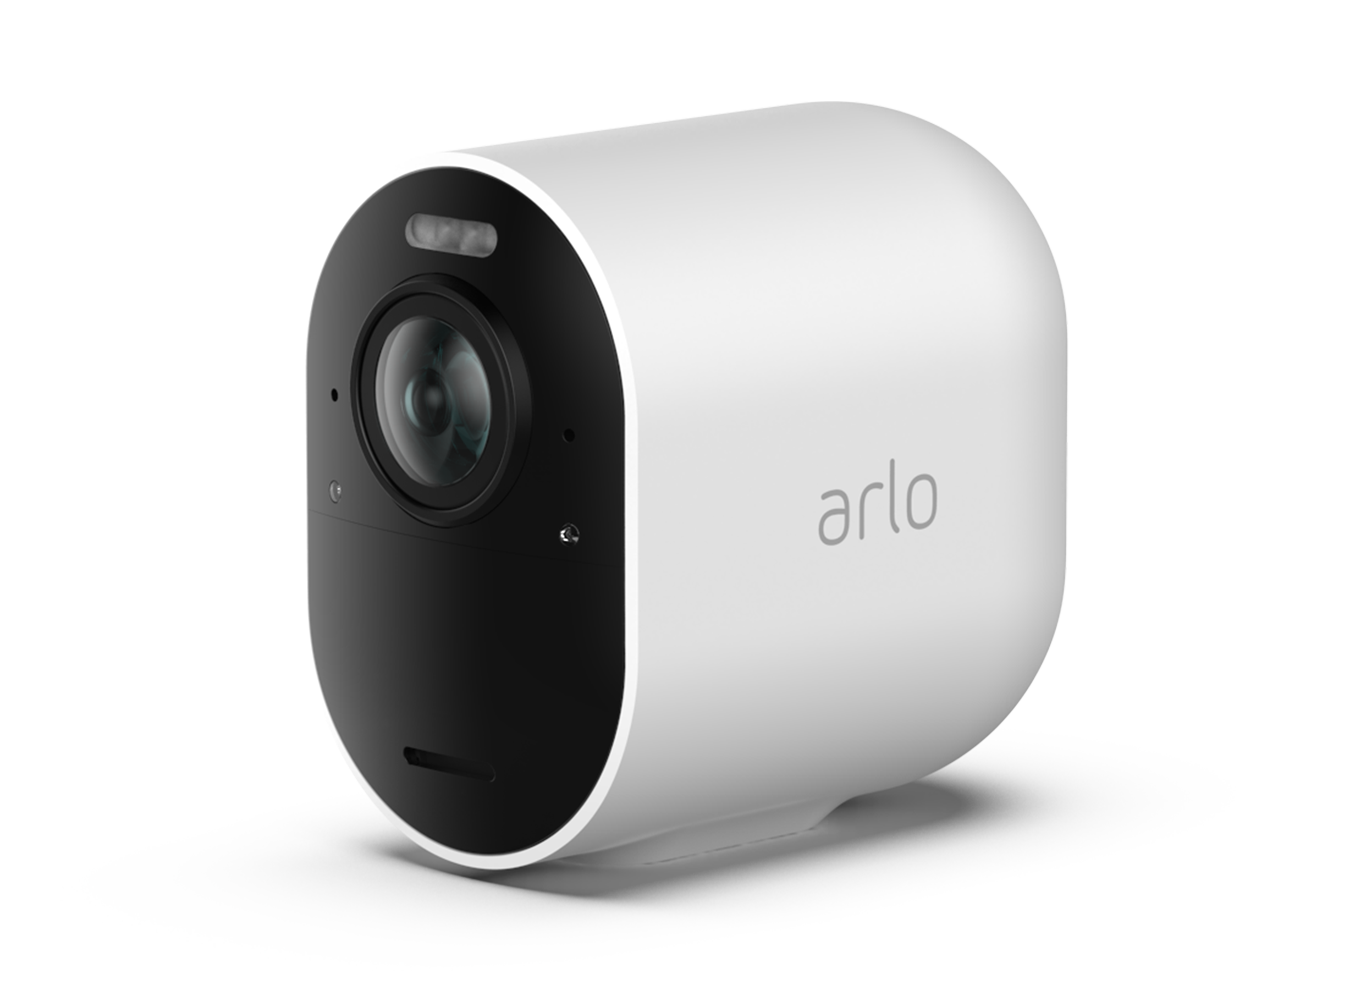 Best home security cameras of 2021 - Arlo Ultra